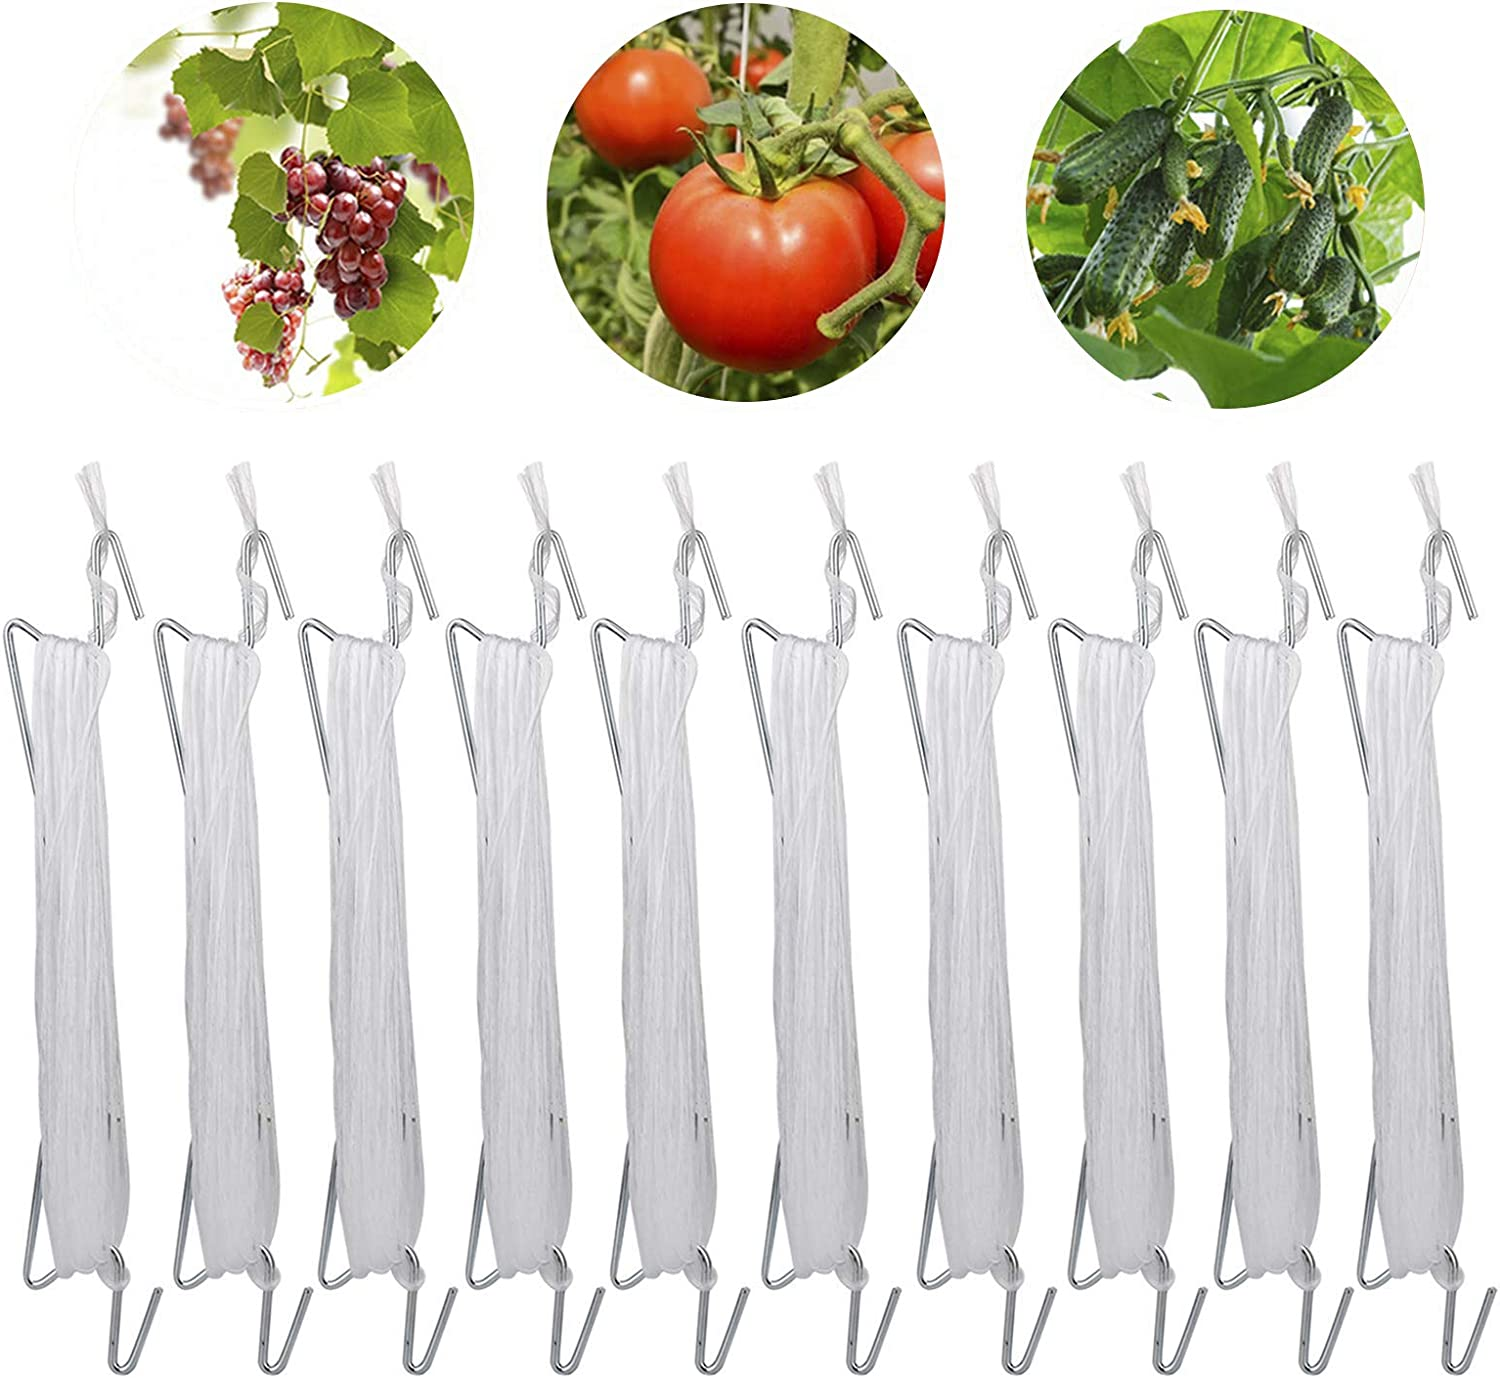 æ— JNDJNFV Tomato Support Hooks, 10Pcs Tomato Support J Hooks, Tomato Hooks Tomato and Vine Crop Trellis, Hooks to Prevent Tomatoes from Pinching or Falling Off, 59ft Rope